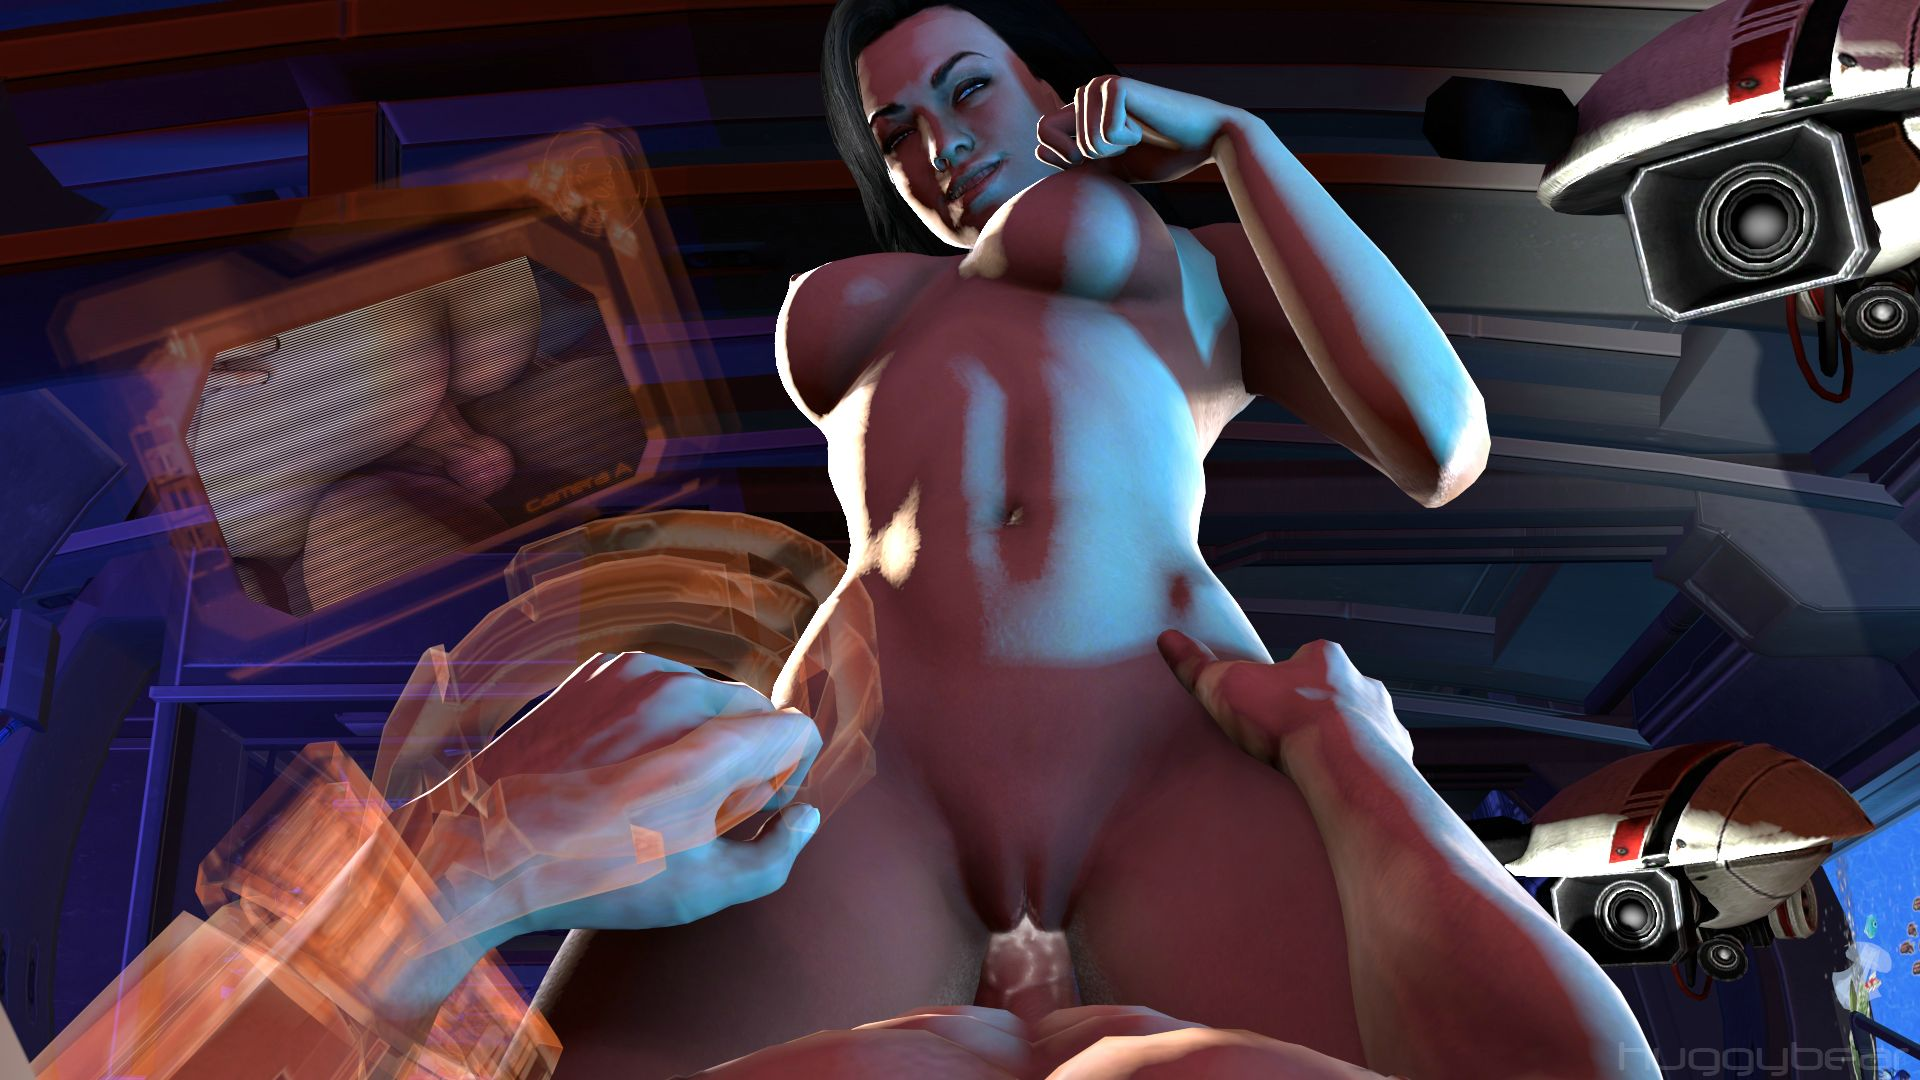 Mass effect miranda nude animated gifs sex pic